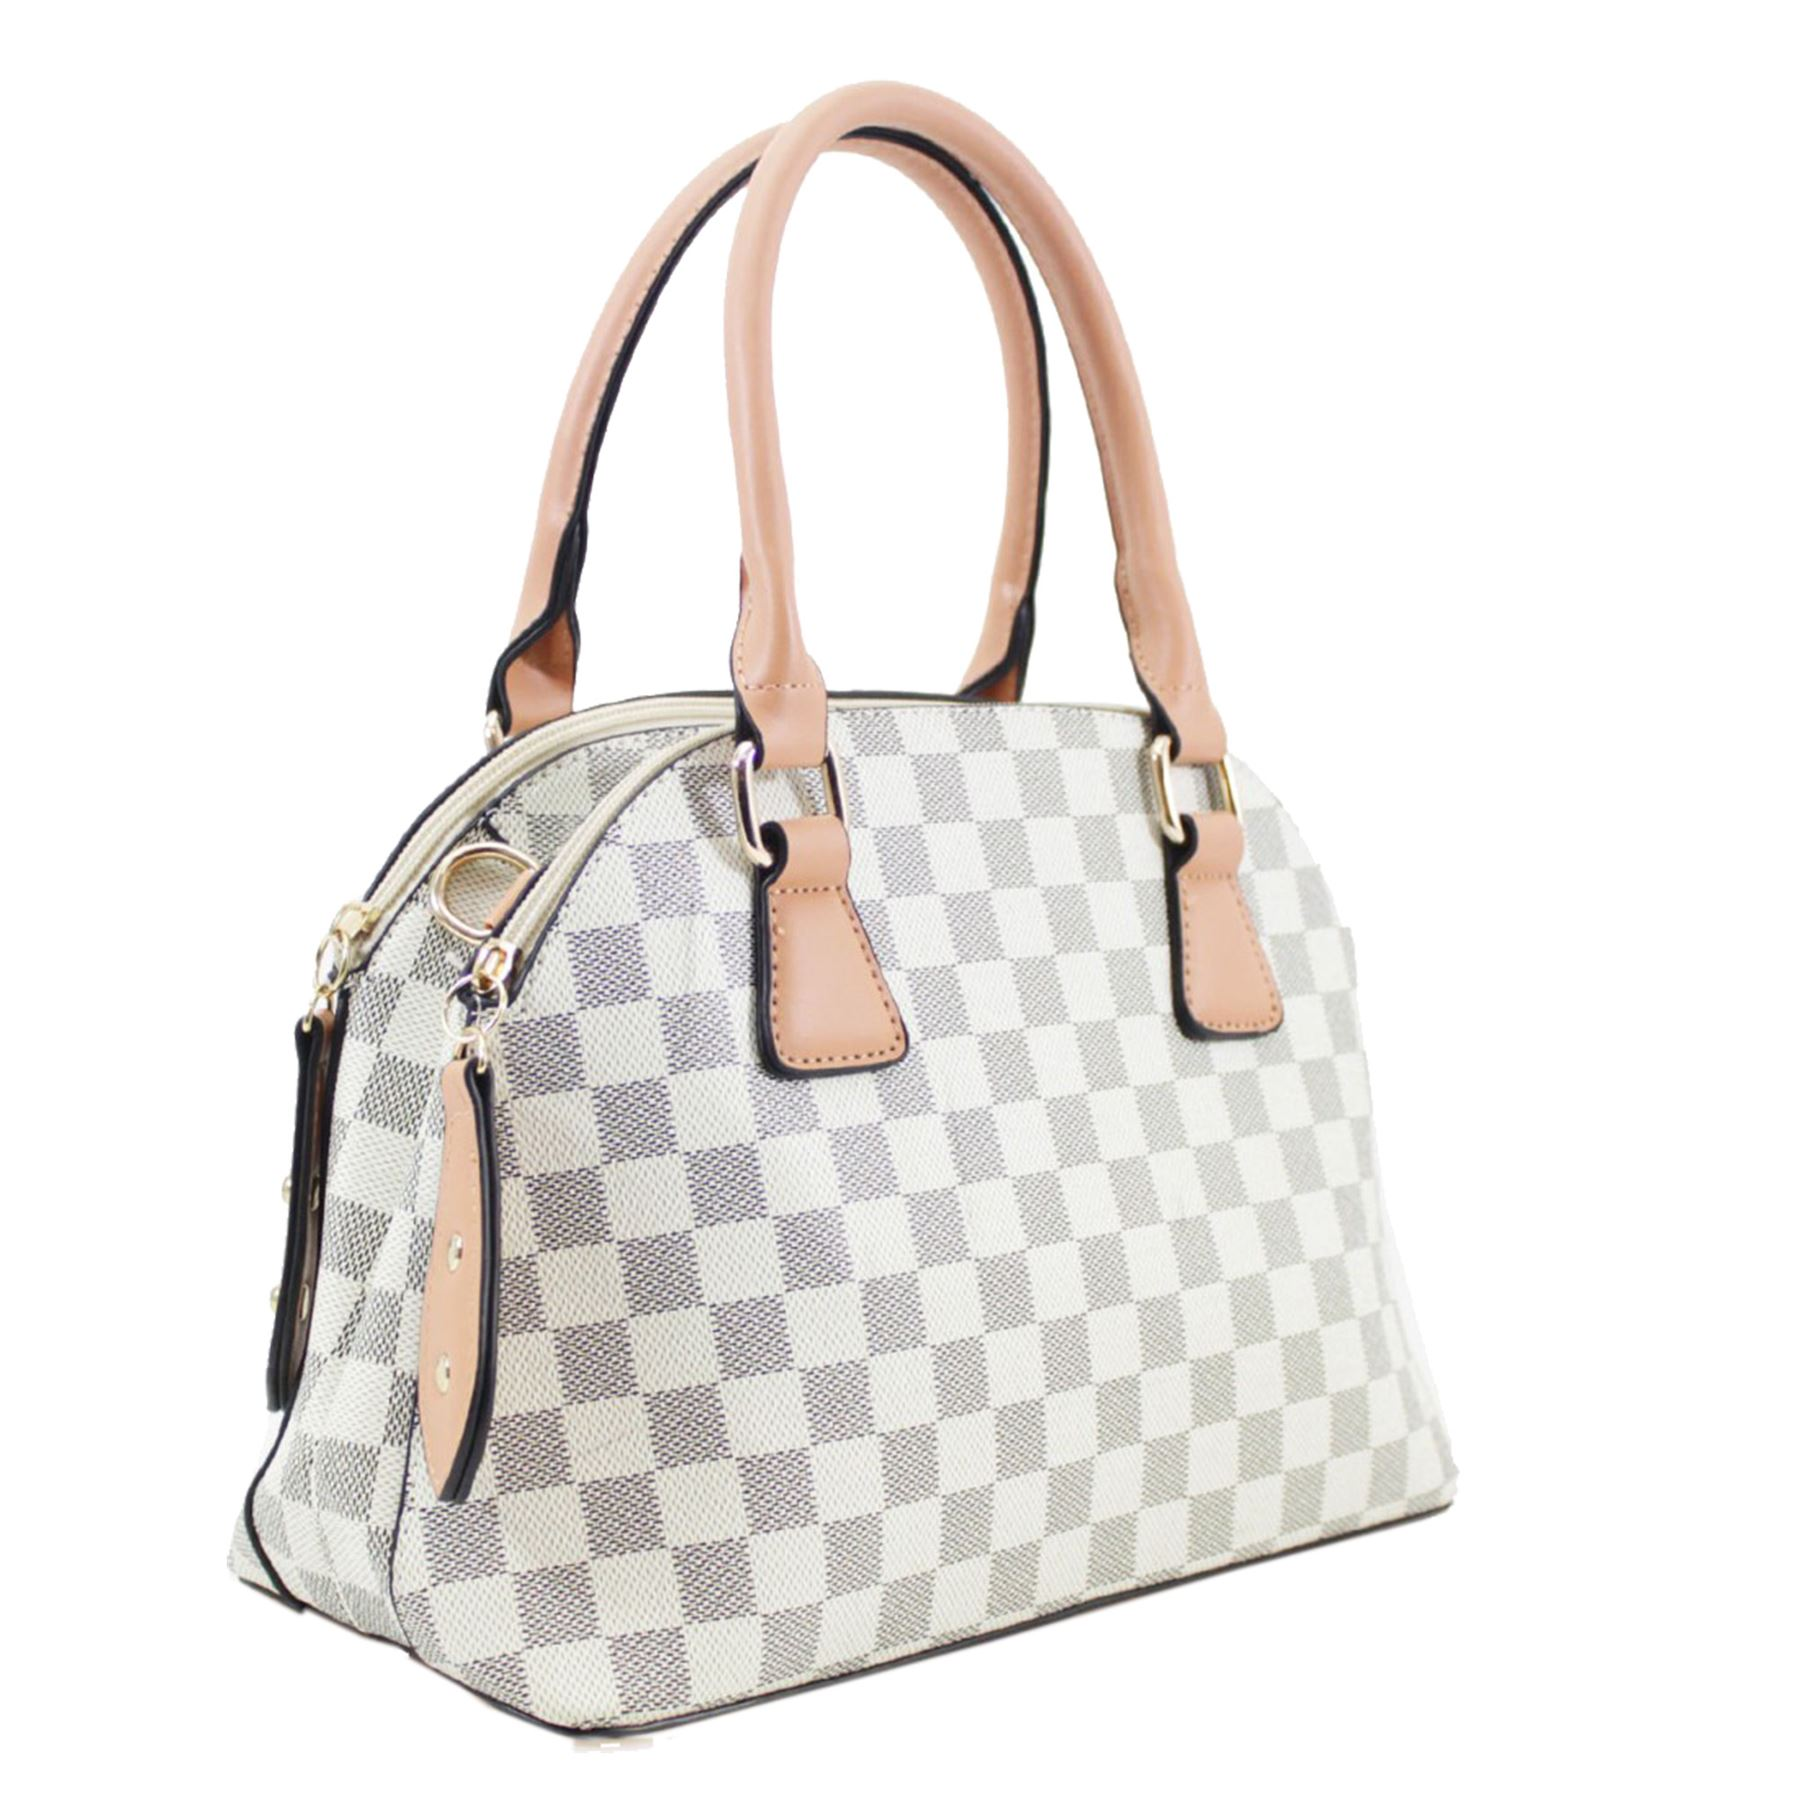 New Women's Double Compartment Patterned Adjustable Tote Casual Handbag